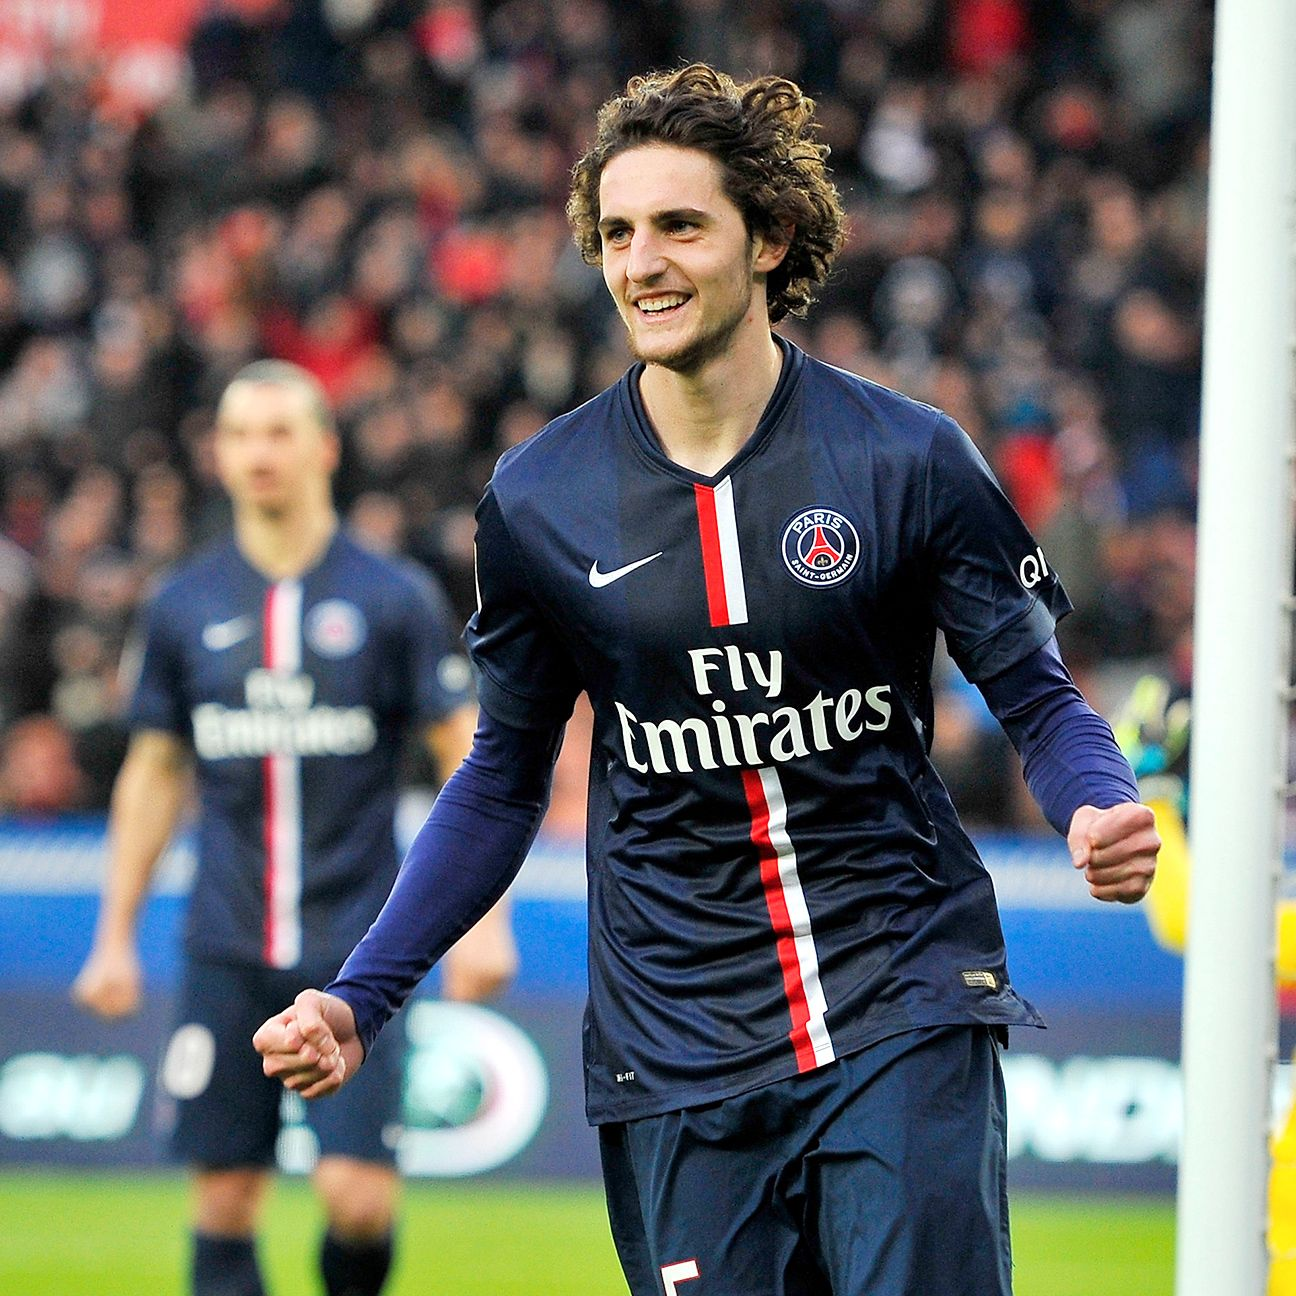 Adrien Rabiot's brace made sure there was no European hangover for PSG versus Toulouse.